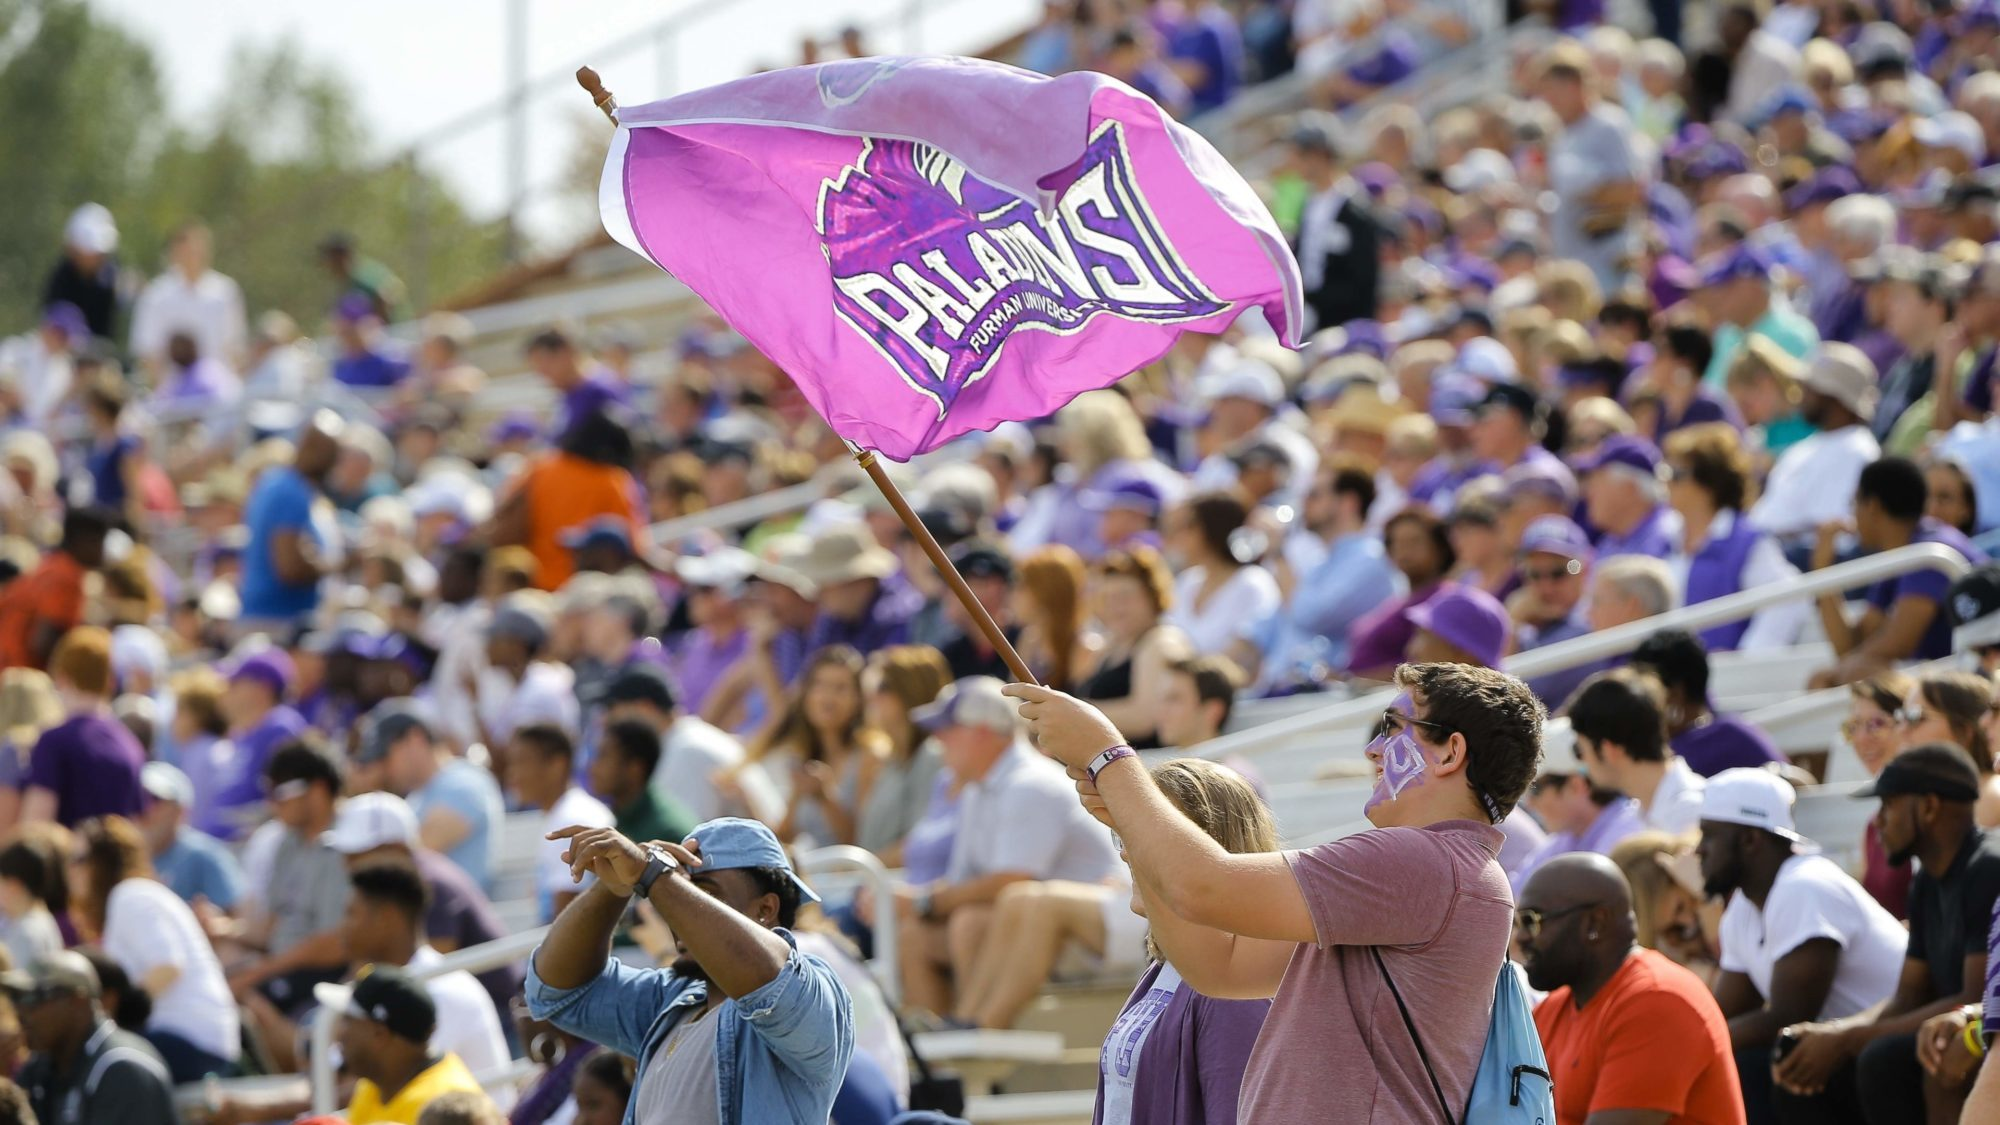 A fan waves a large Furman Paladins flag in front of a large crowd.